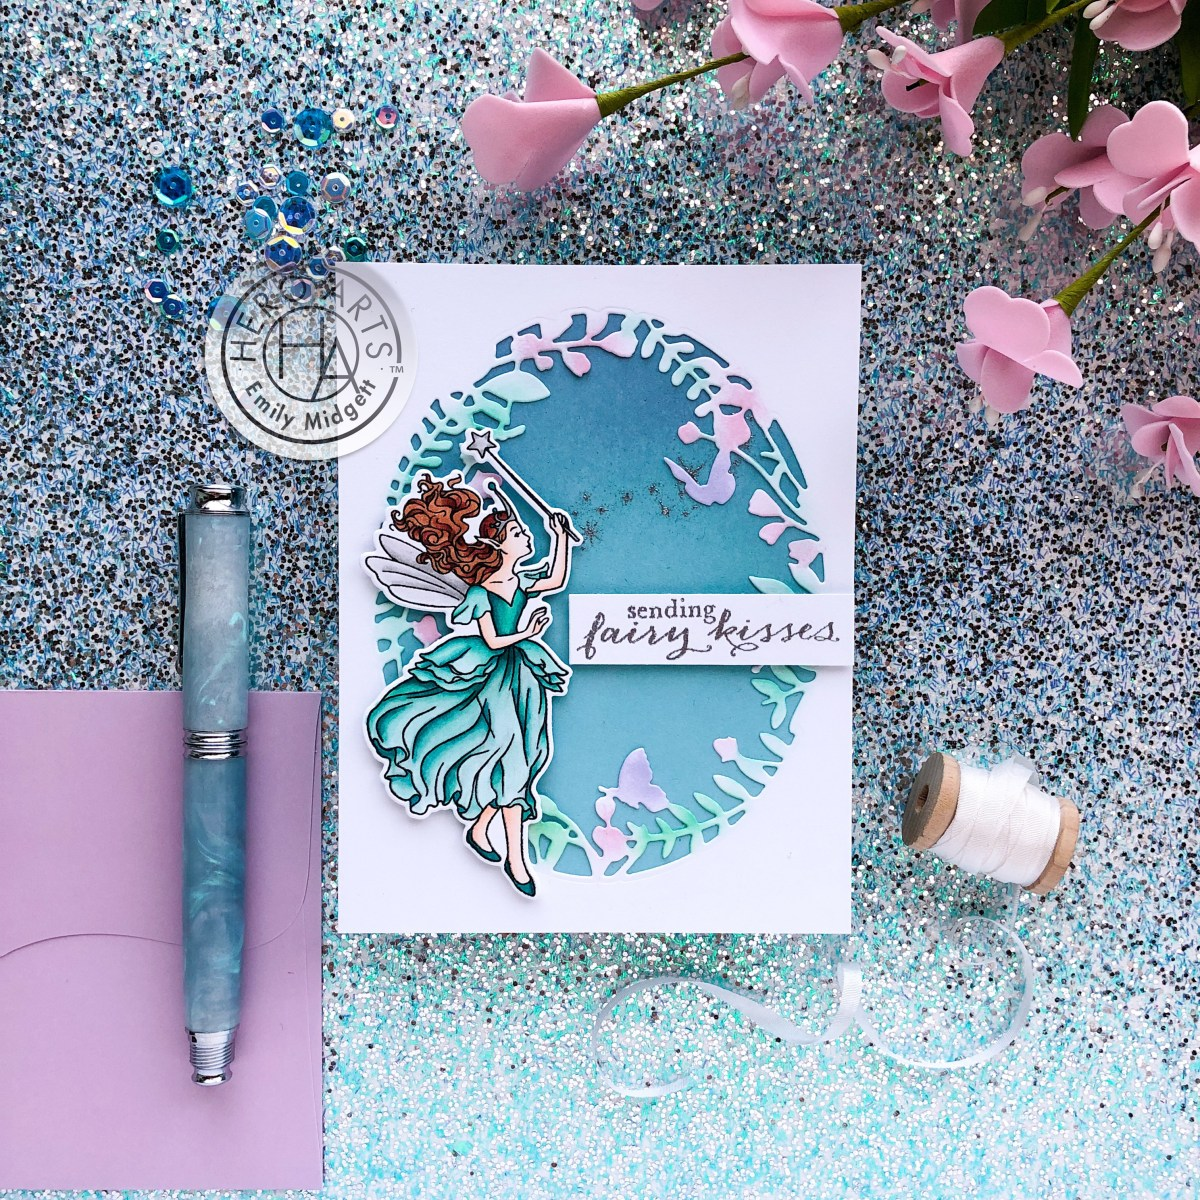 Hero Arts 2019 Catalog Blog Hop+Giveaway!